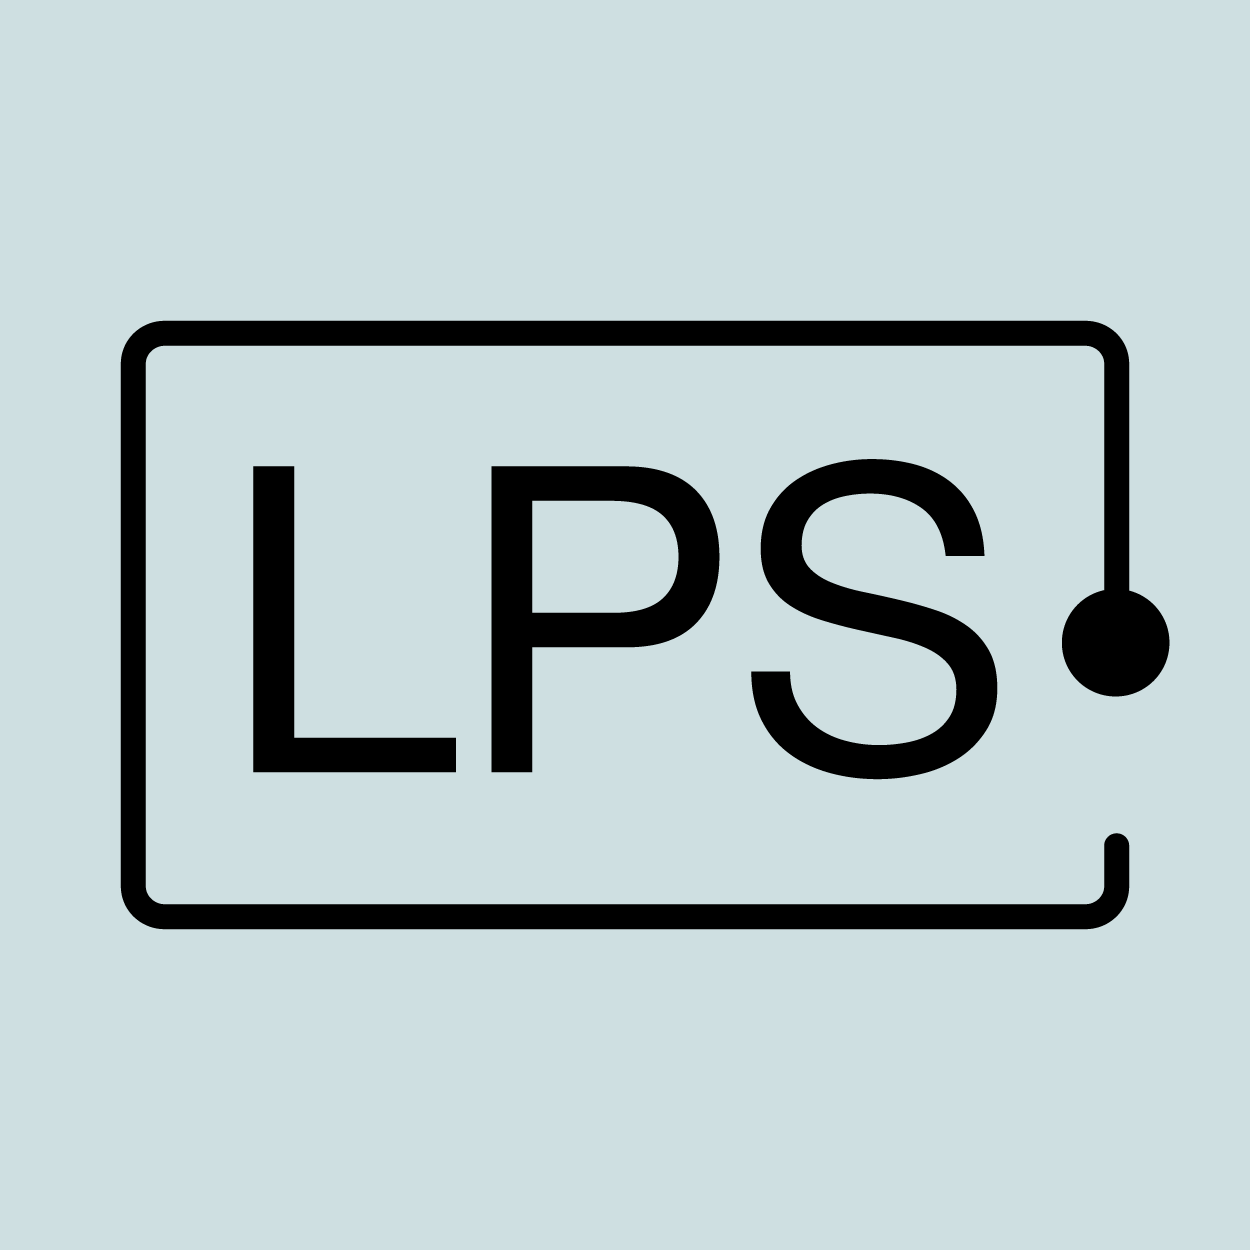 LPS placeholder image